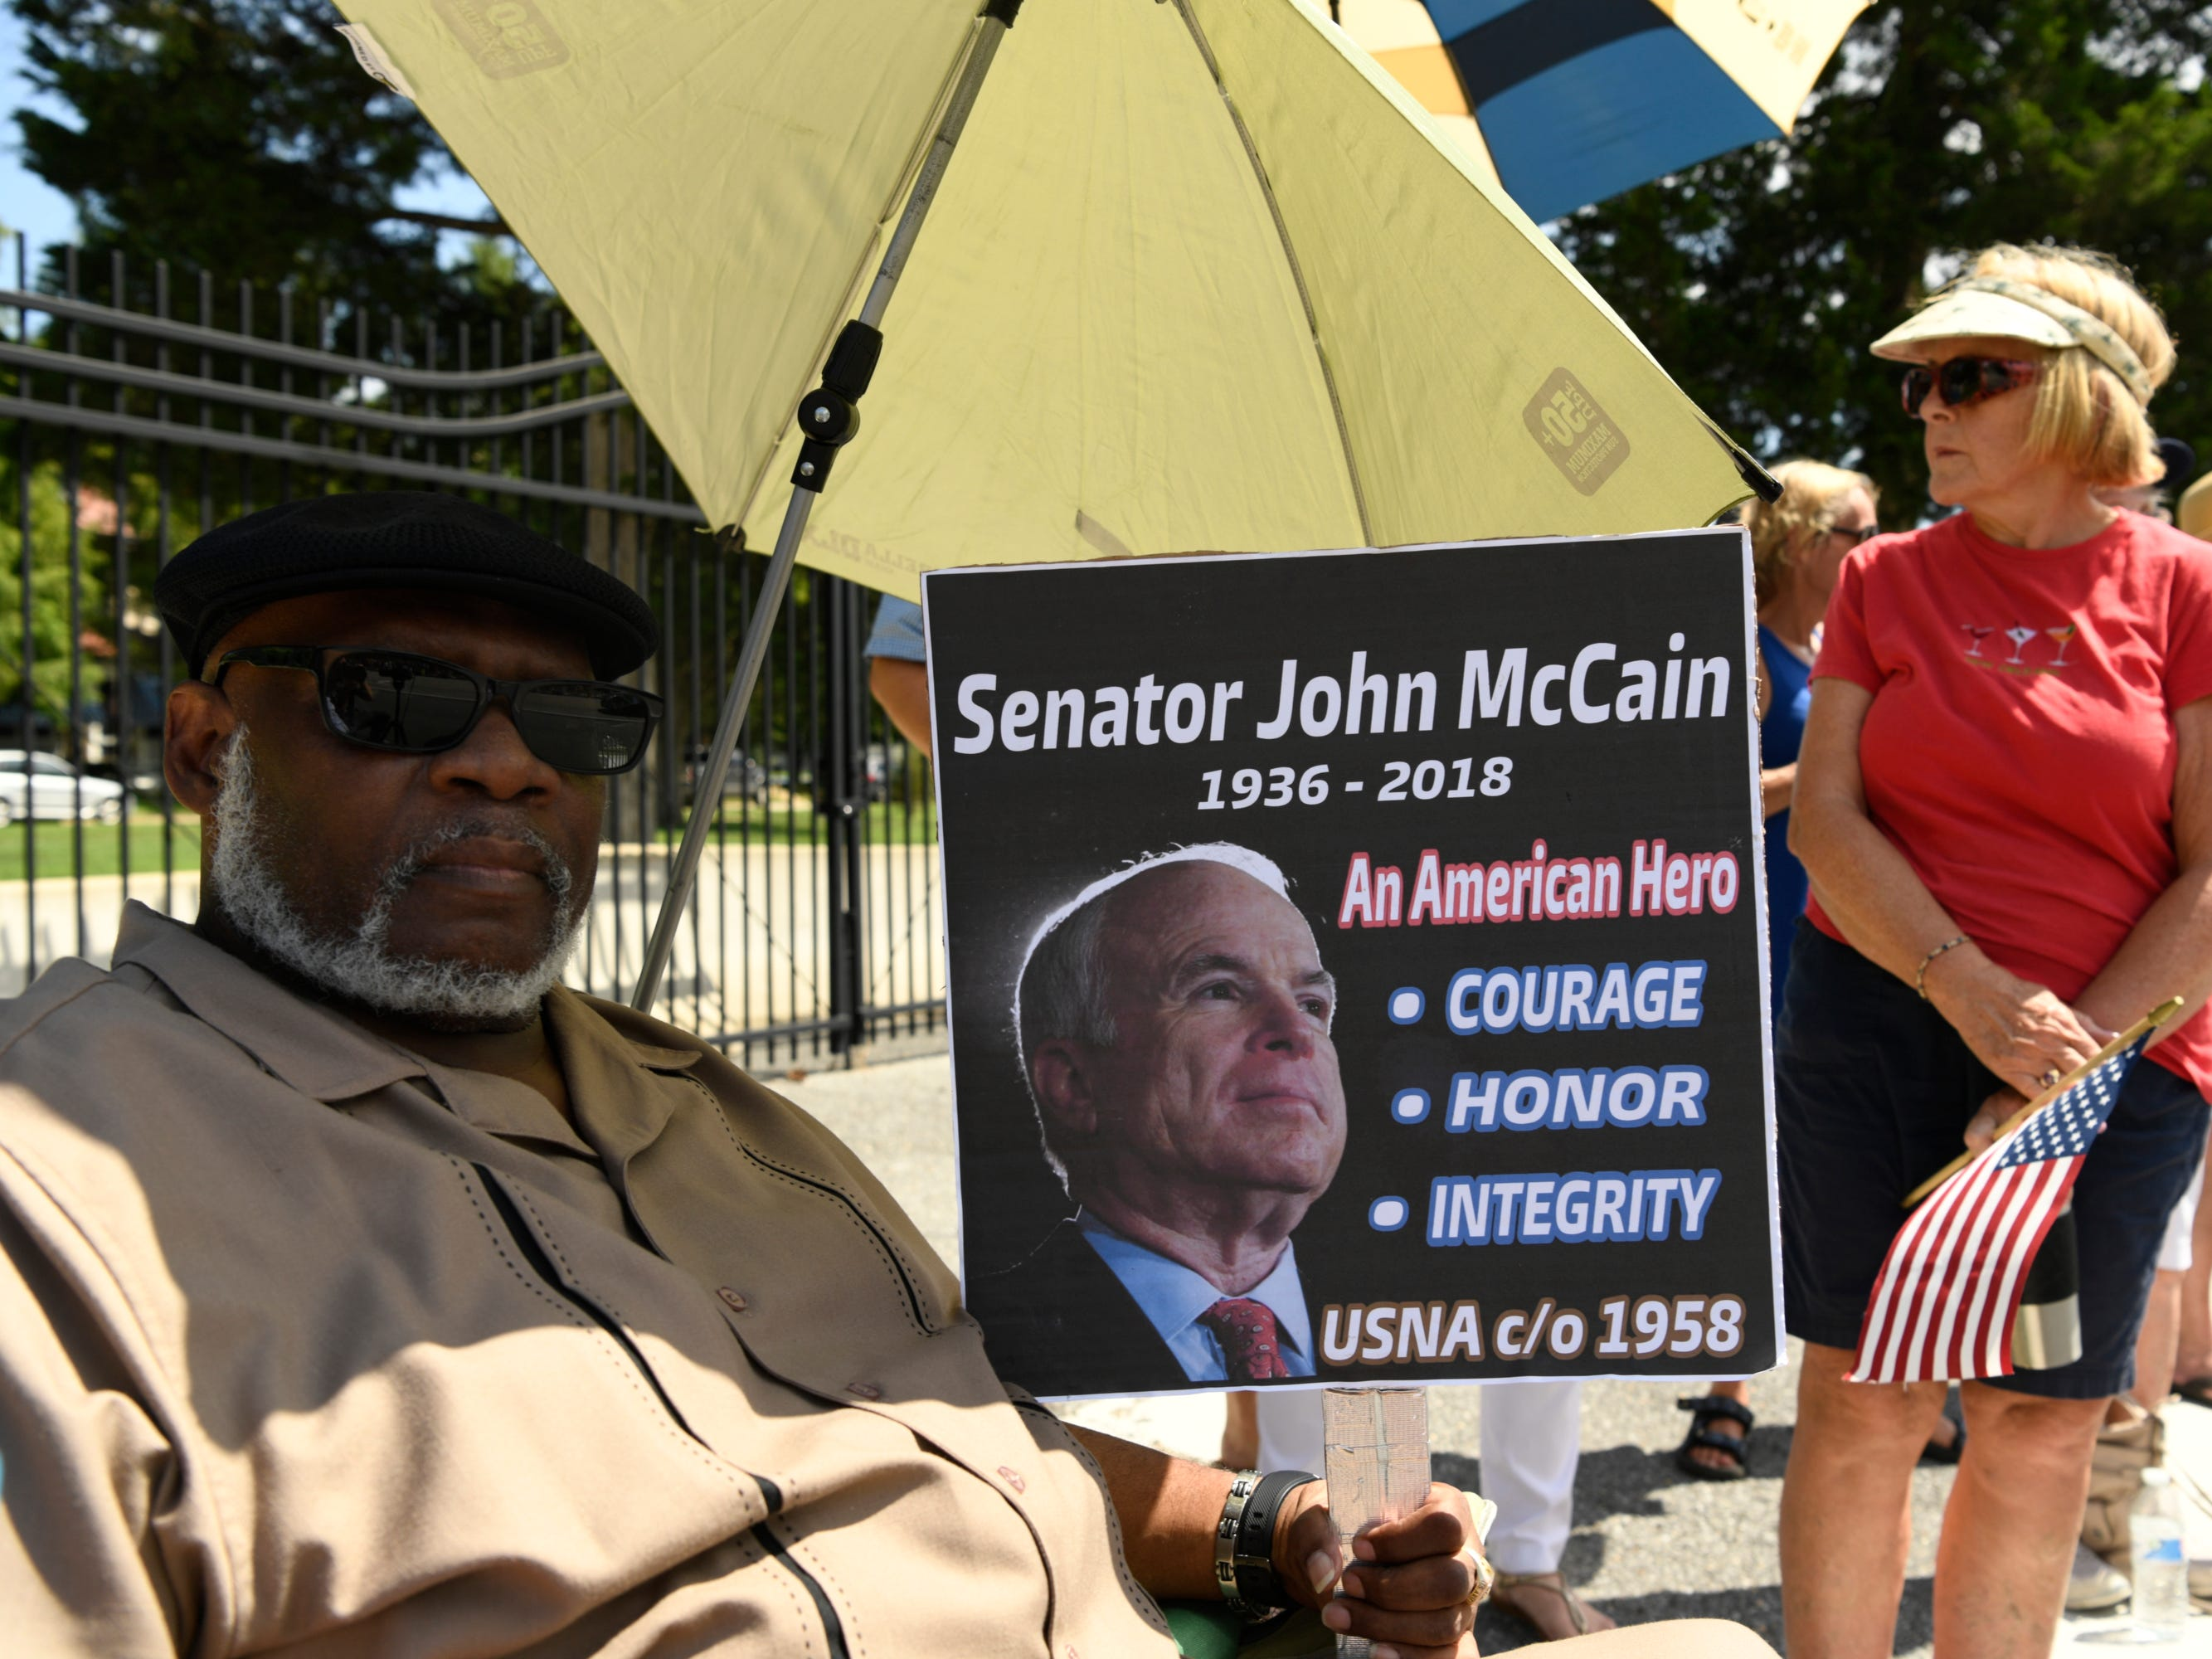 Charles James Sr. sits with a sign he made to watch the passing of John McCain's motorcade on his way to be laid to rest at the U.S. Naval Academy in Annapolis, Maryland.